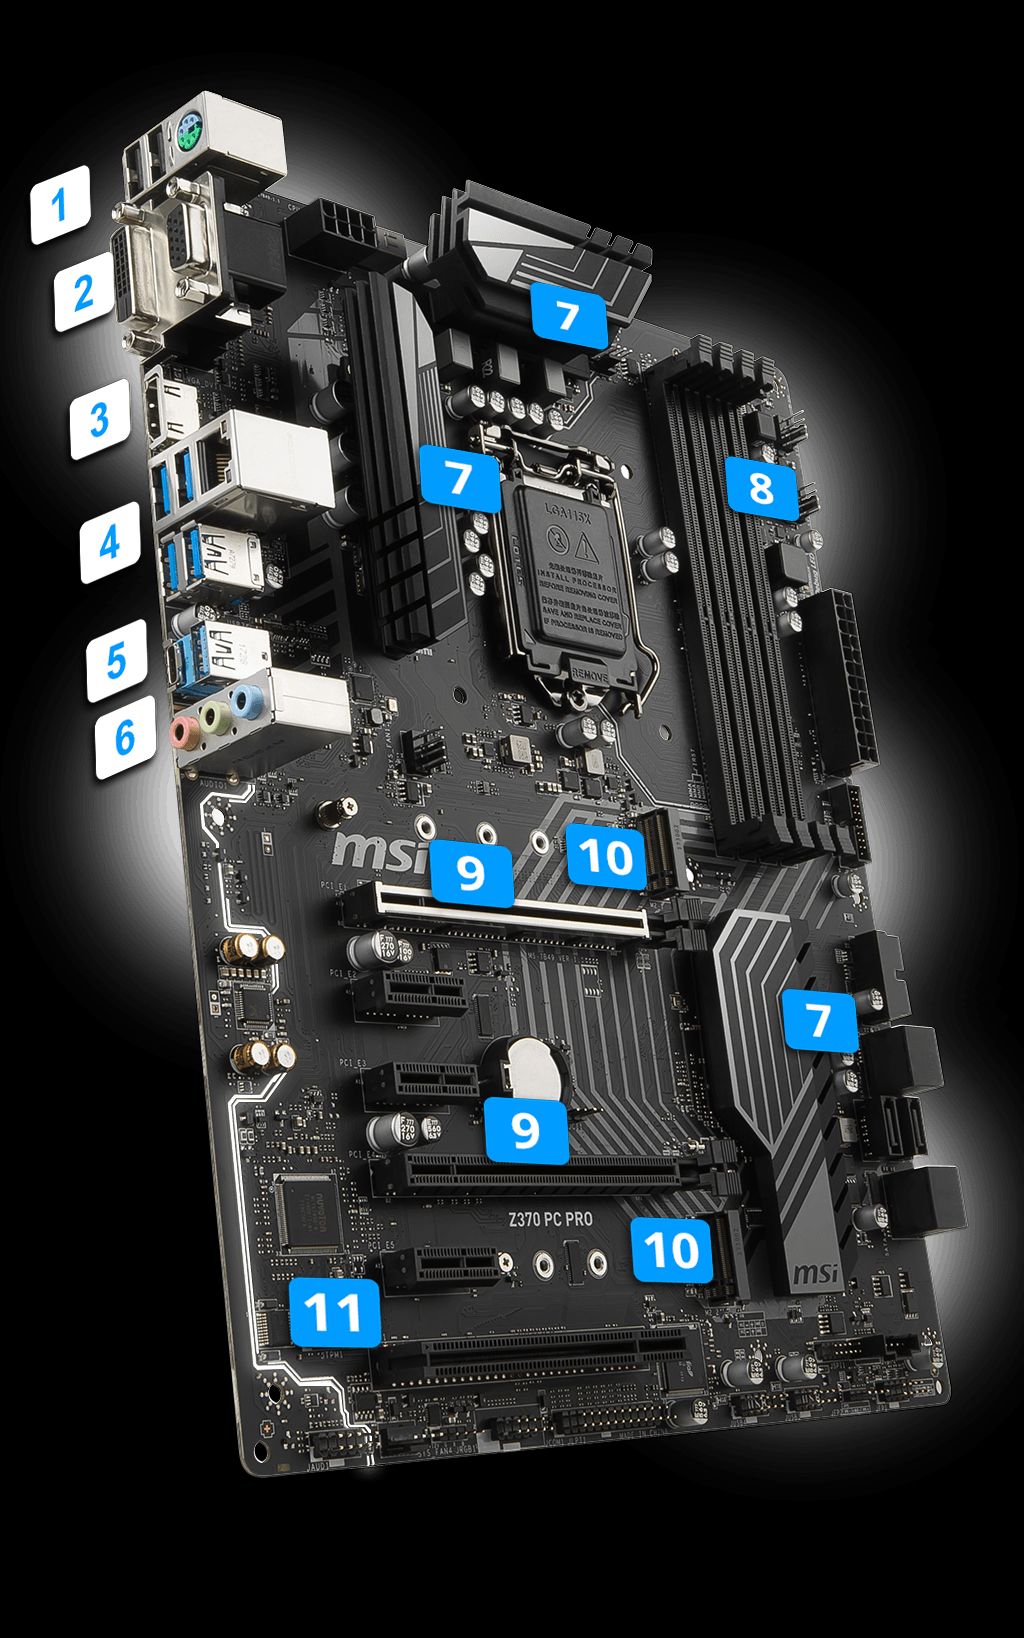 Z370 PC PRO | Motherboard - The world leader in motherboard design